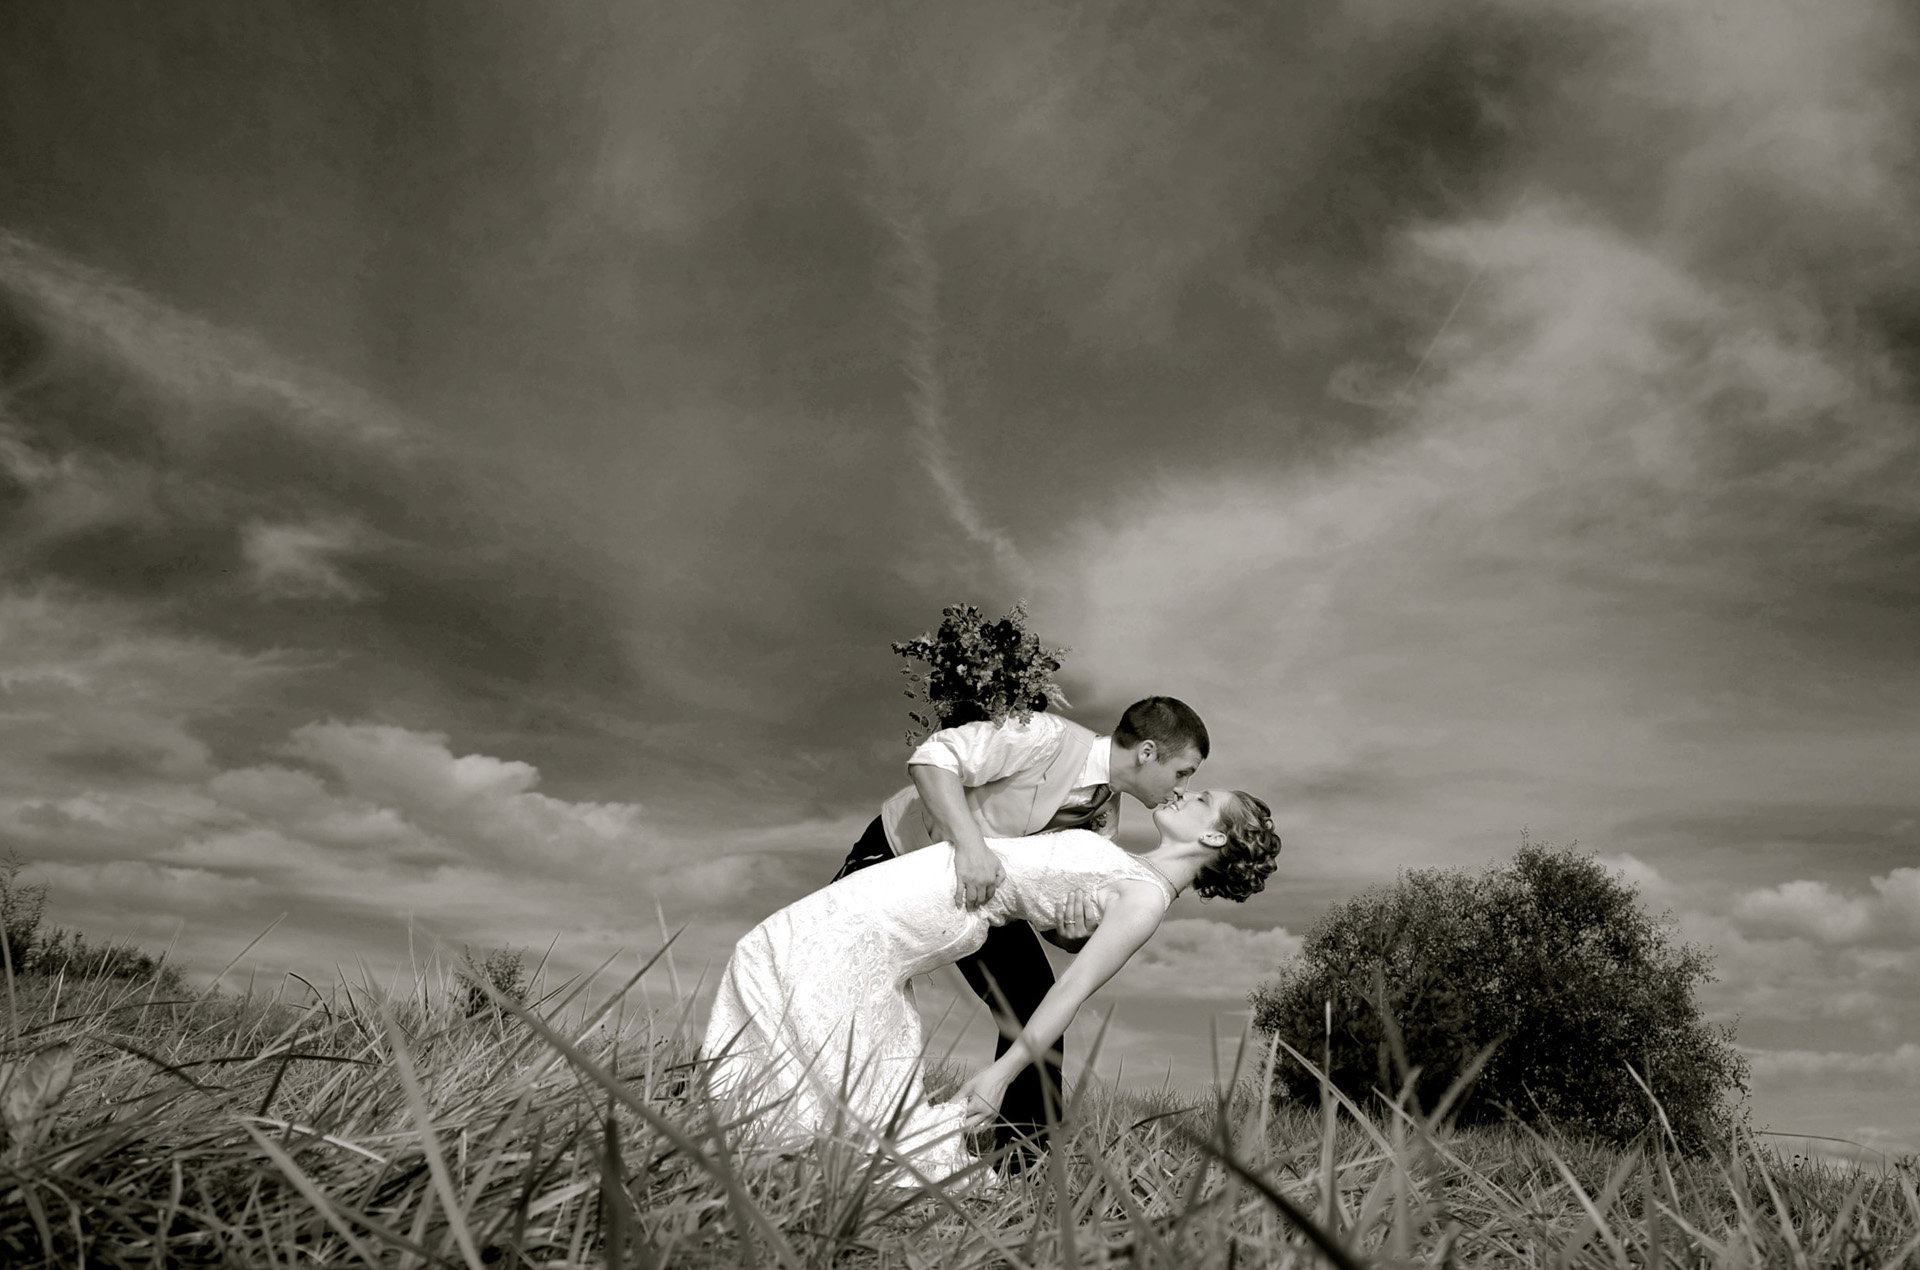 michigan wedding photographer takes dramatic portraits of a couple at their rustic wedding.